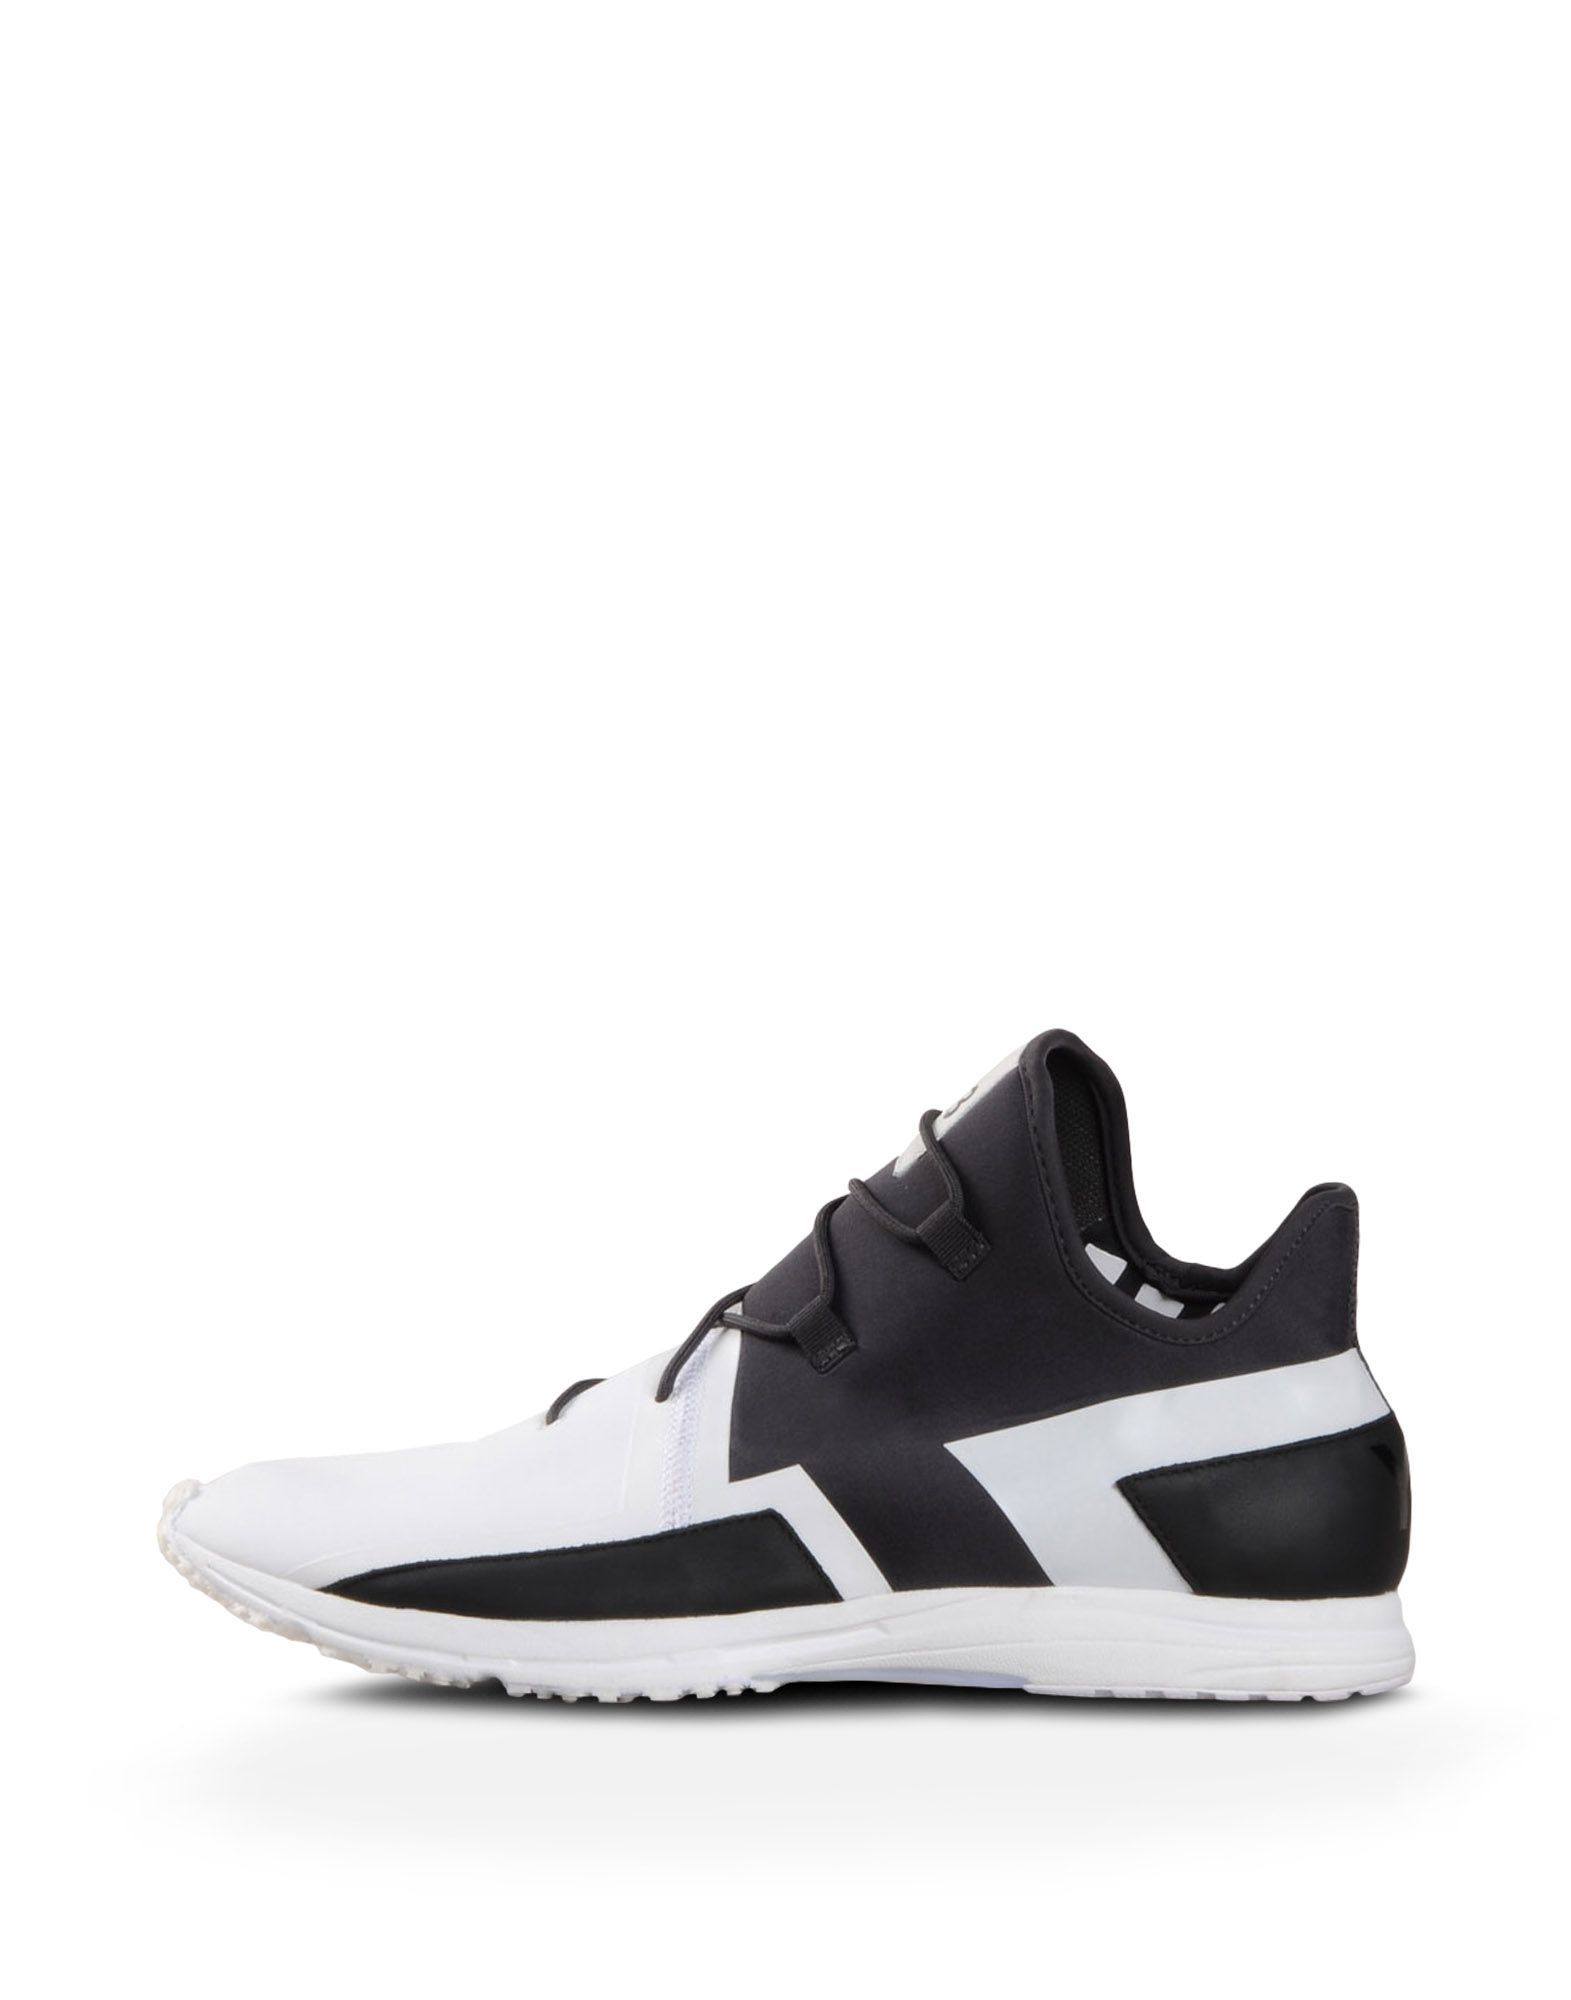 Check out the Y 3 ARC RC Sneakers for Men and order today on the official  Adidas online store.